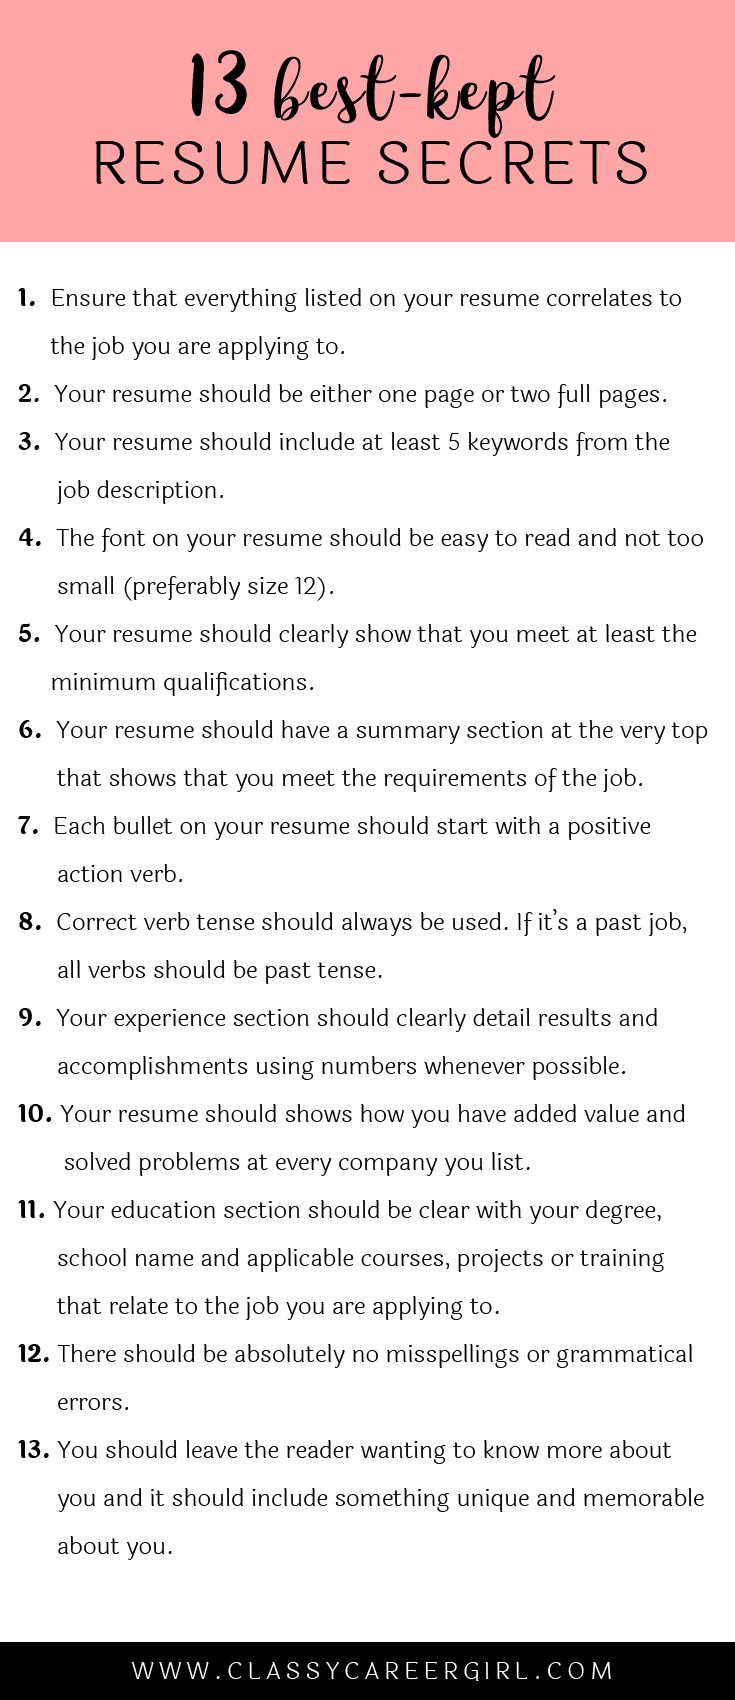 Opposenewapstandardsus  Seductive  Ideas About Resume On Pinterest  Cv Format Resume  With Entrancing Some Hiring Managers Will Toss Your Resume Out If You Dont Know These  With Delectable Resume Examples  Also Sample Resume For Cashier In Addition Skills And Abilities Resume Example And Business Resume Format As Well As Resume Goals Additionally Resume After College From Pinterestcom With Opposenewapstandardsus  Entrancing  Ideas About Resume On Pinterest  Cv Format Resume  With Delectable Some Hiring Managers Will Toss Your Resume Out If You Dont Know These  And Seductive Resume Examples  Also Sample Resume For Cashier In Addition Skills And Abilities Resume Example From Pinterestcom